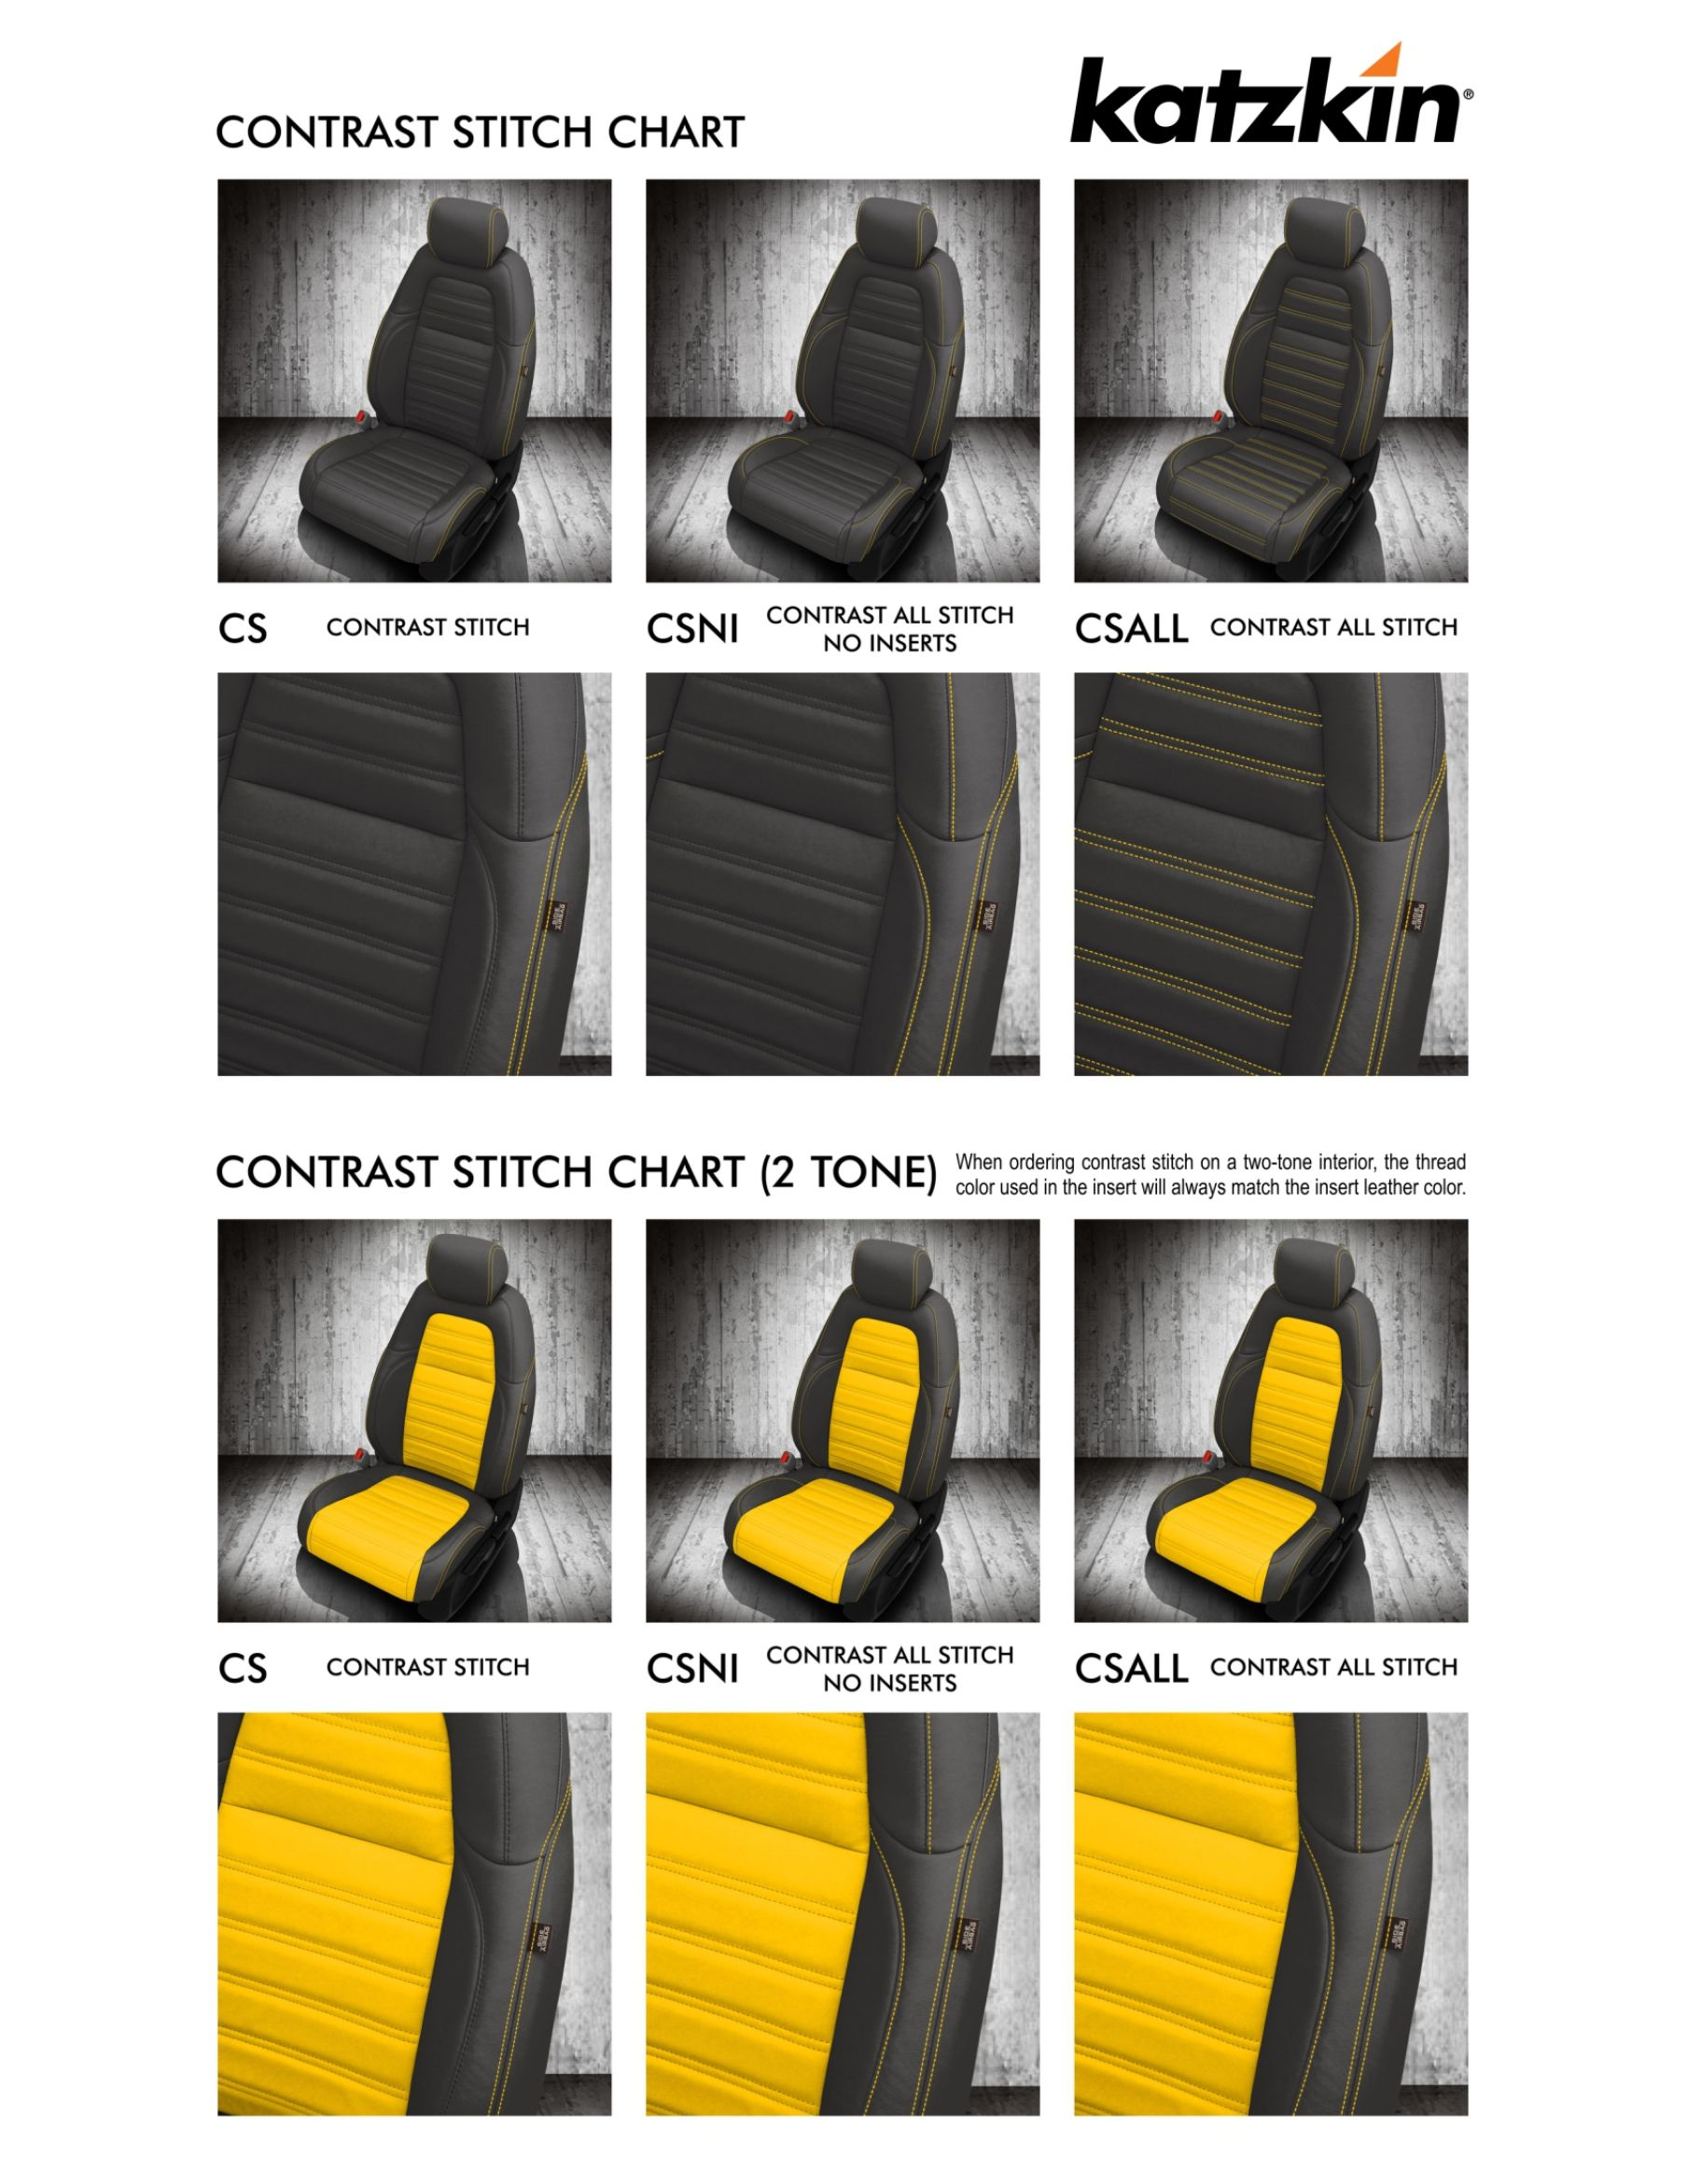 Contrast Stitch Explained